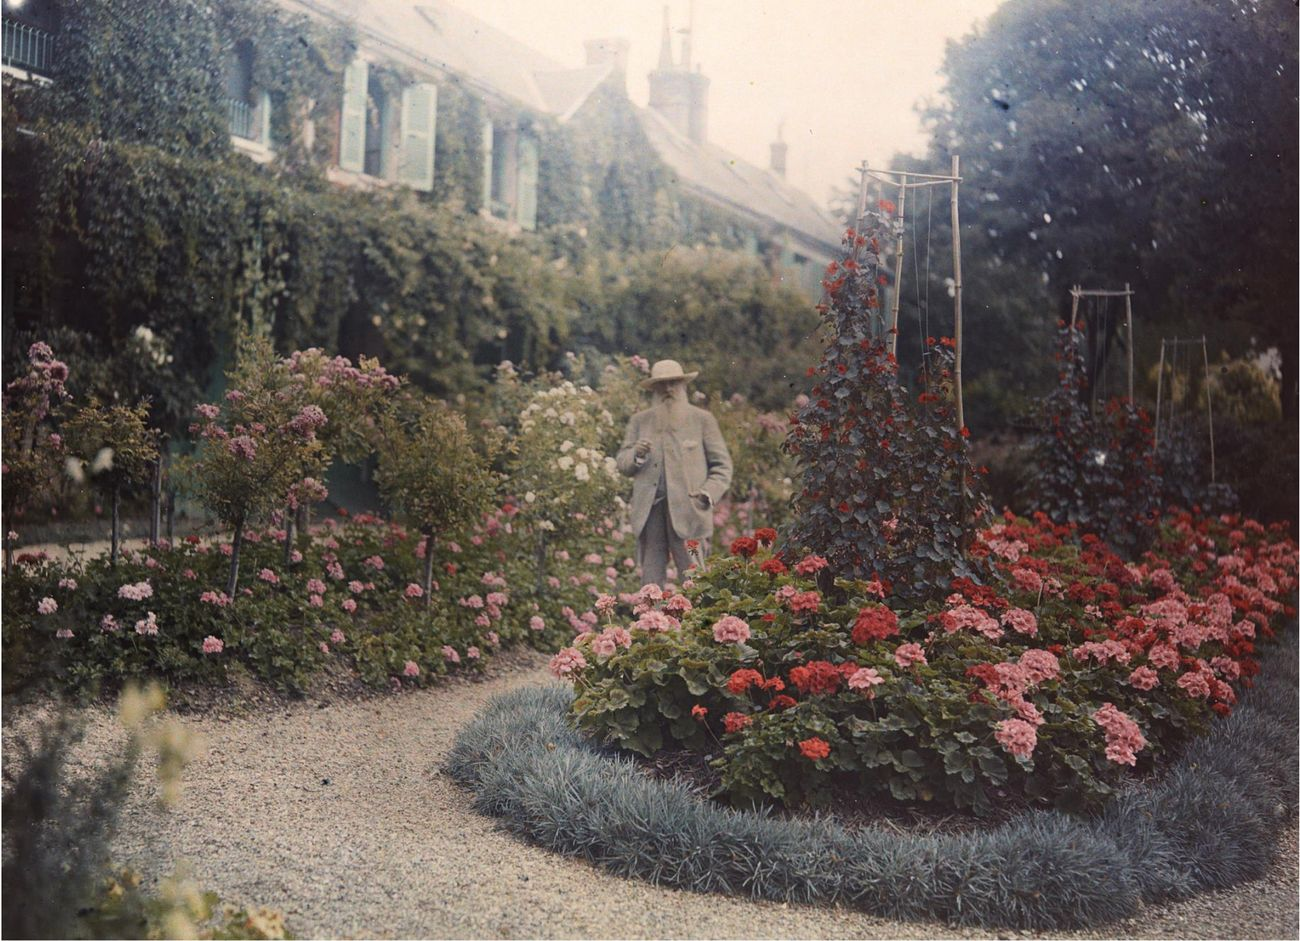 Anonimo, Monet nel suo giardino a Giverny, 1921. Collection of the Troob Family Foundation. Image courtesy of the Fine Arts Museums of San Francisco